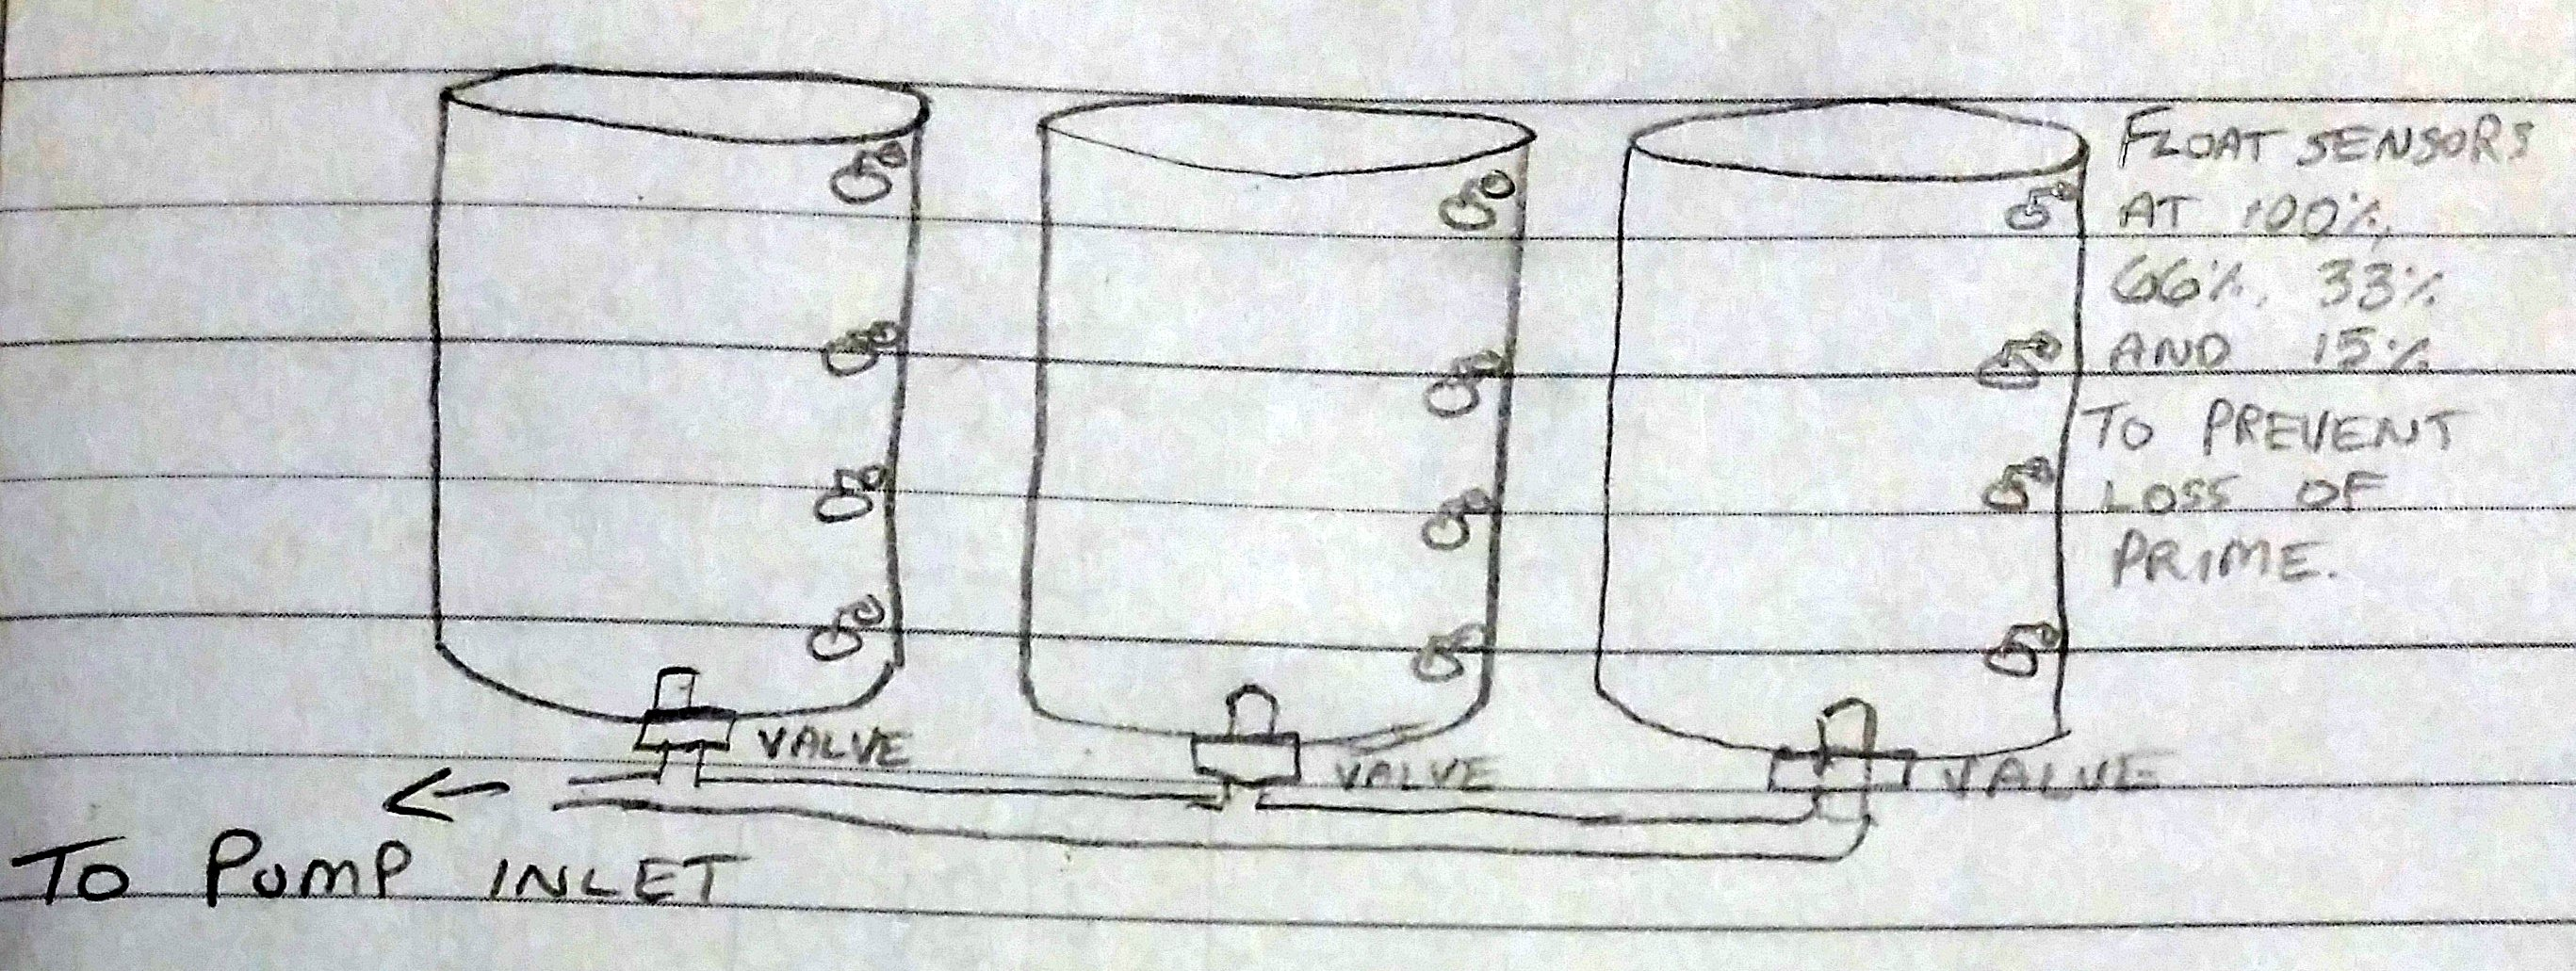 A sketch depicting the approximate connections between multiple barrels of the same level and mounting height, and the placement of float sensors within them to register how much water they contain.